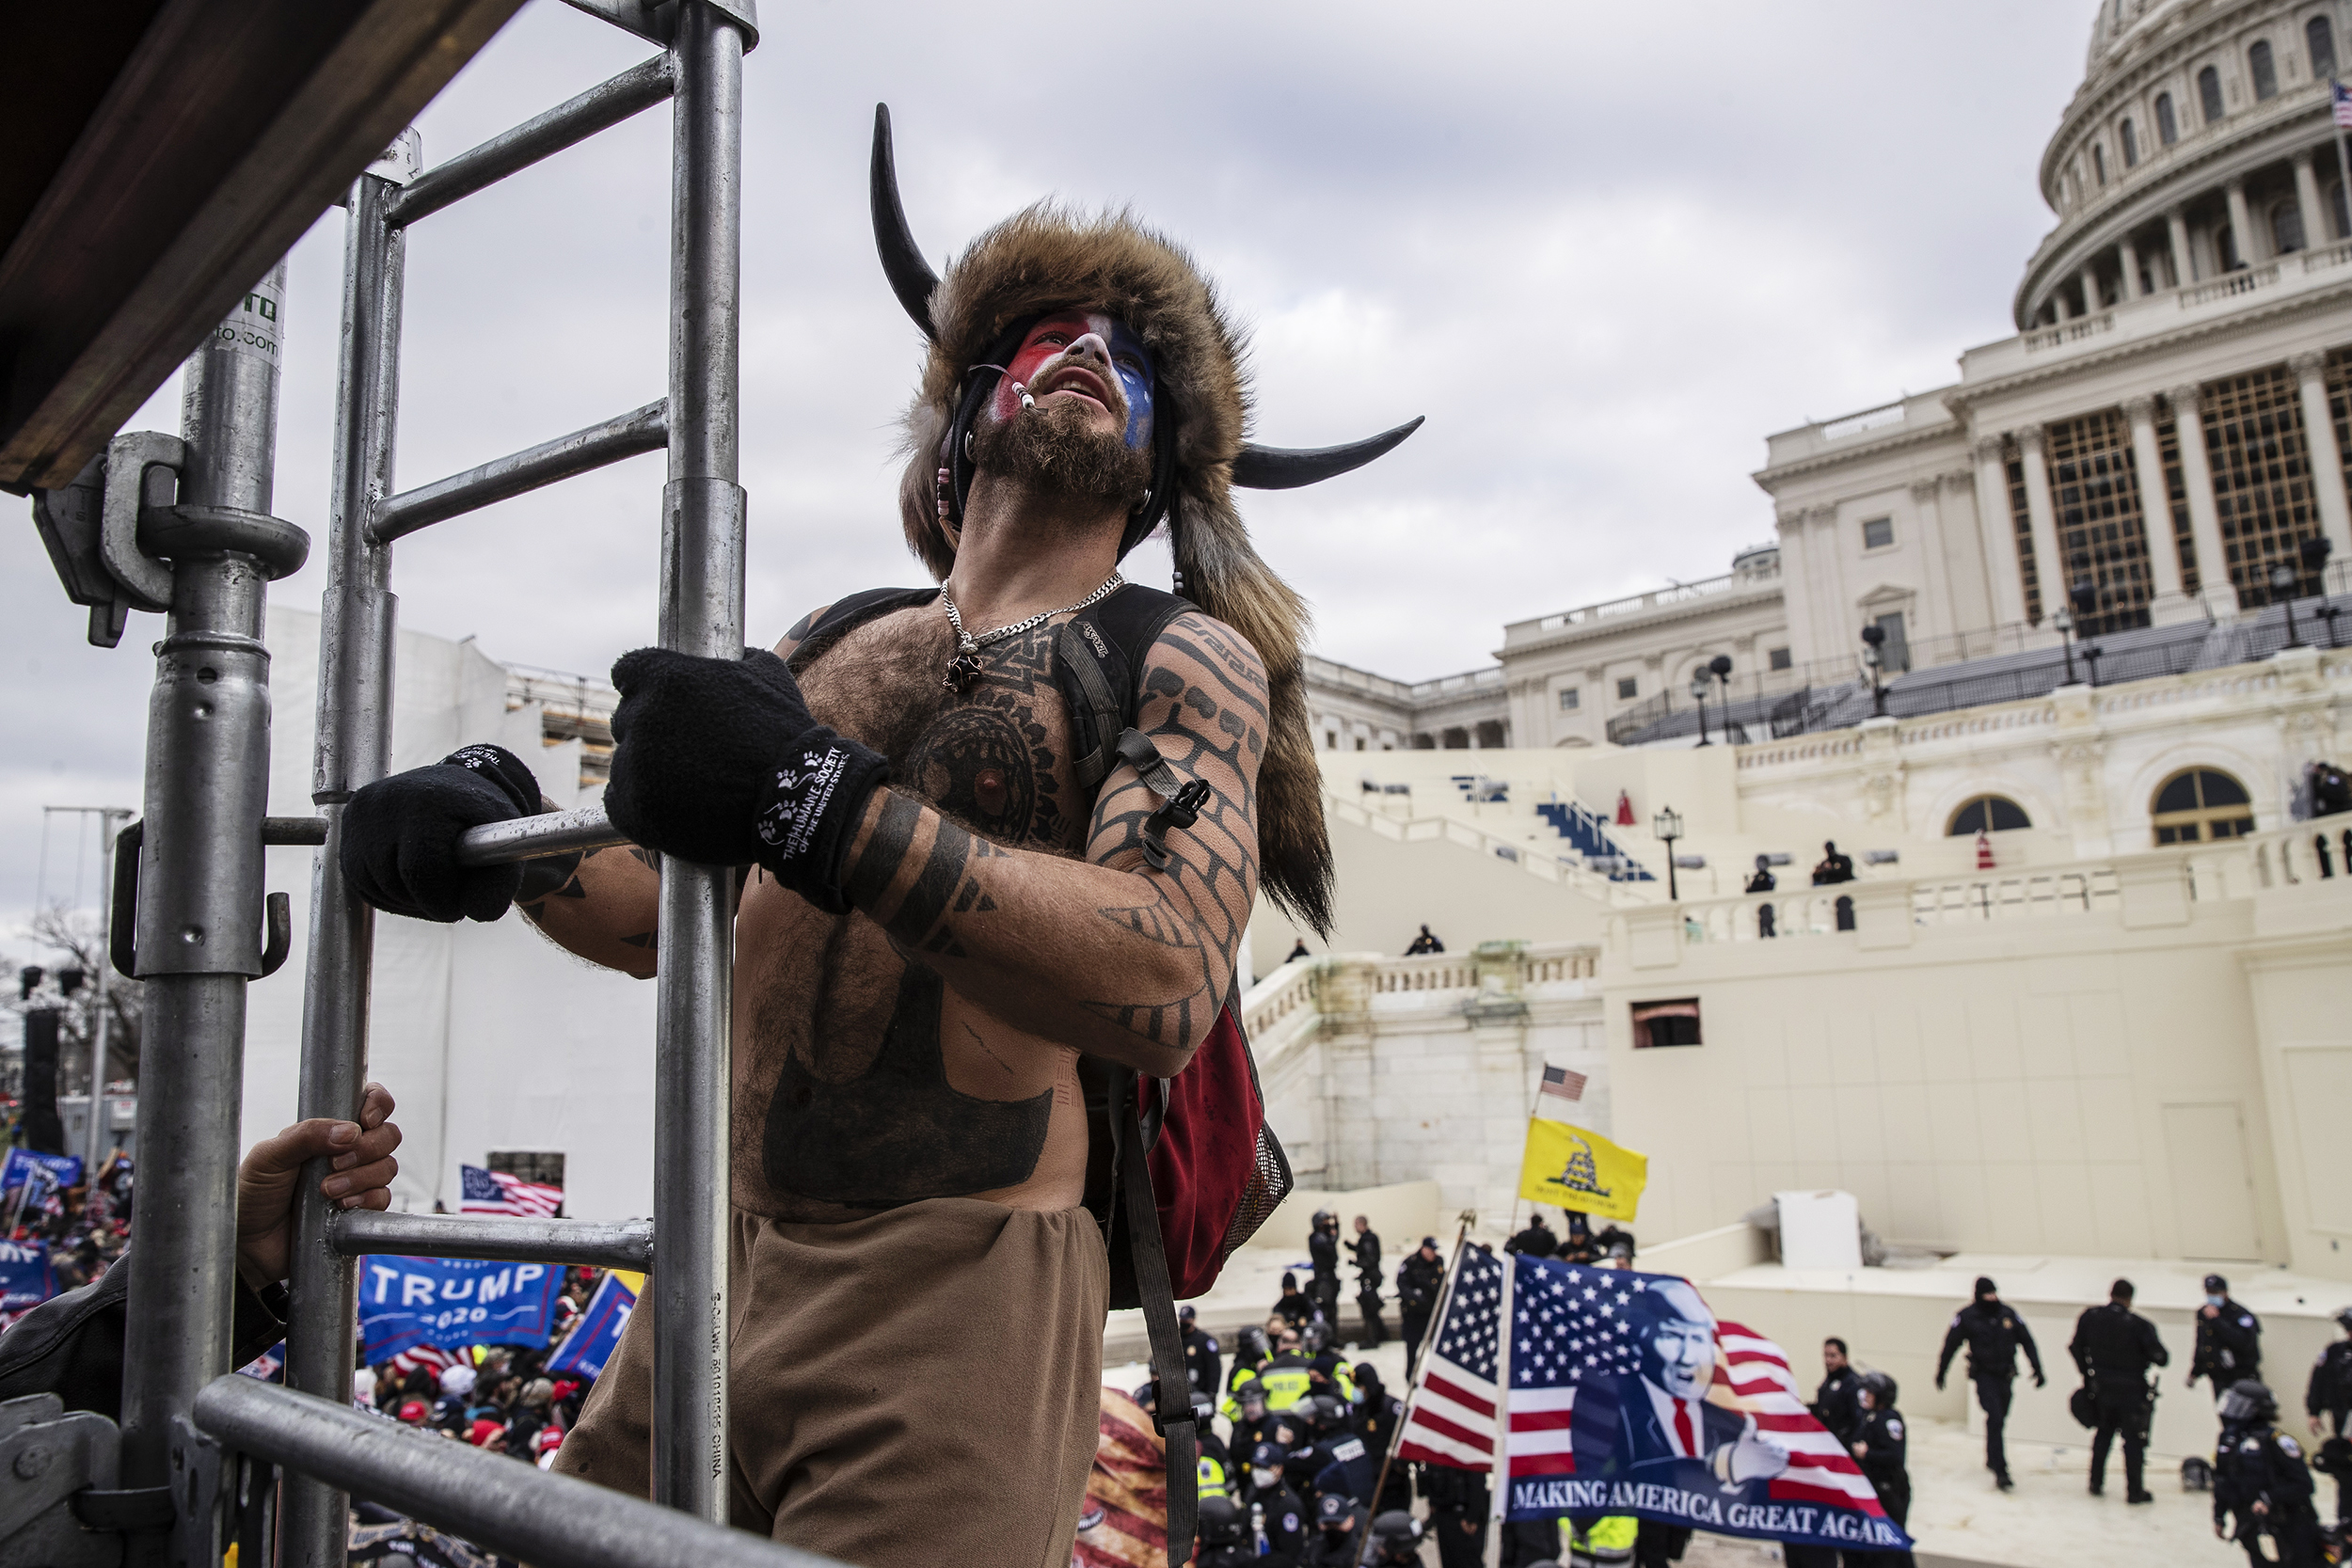 Girls in bikinis protest trump Pro Trump Capitol Rioters Like The Qanon Shaman Looked Ridiculous By Design